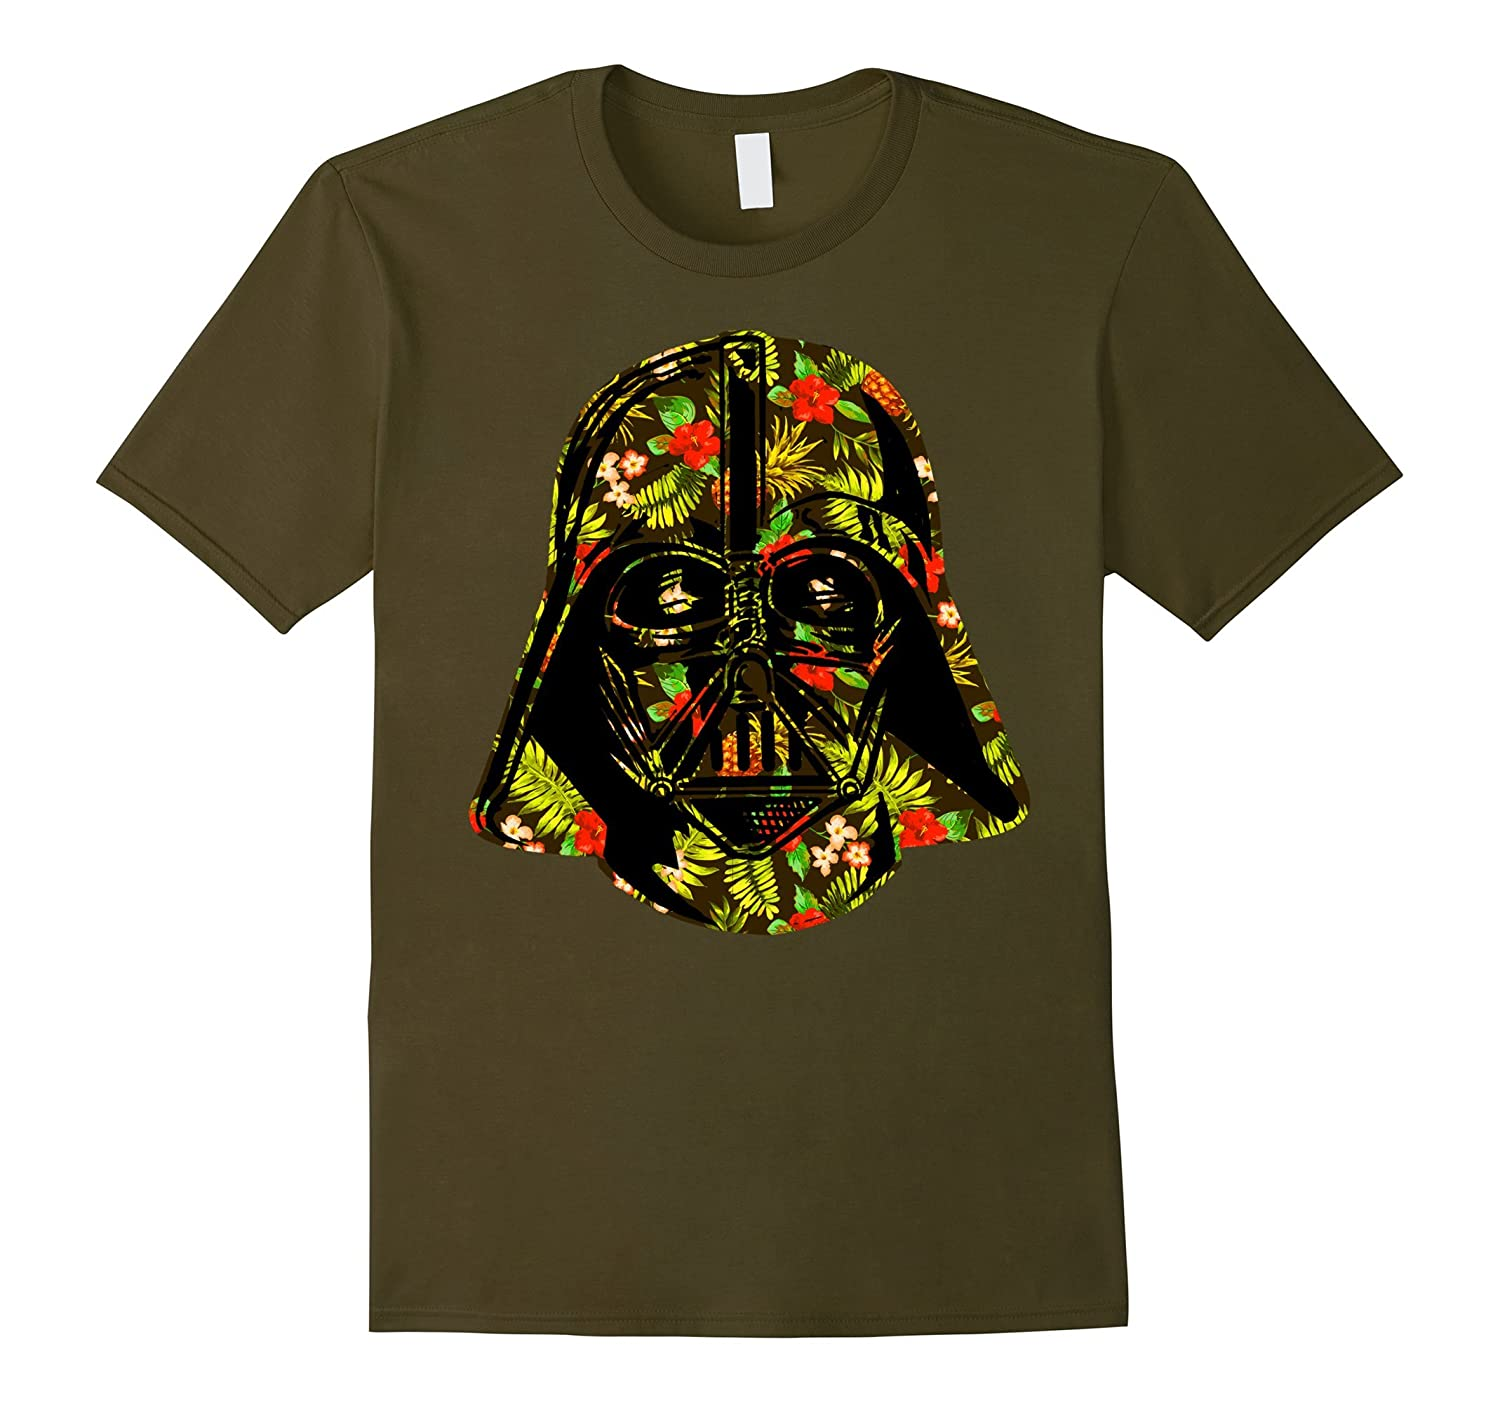 Star wars hawaiian print darth vader helmet graphic t for Hawaiian graphic t shirts